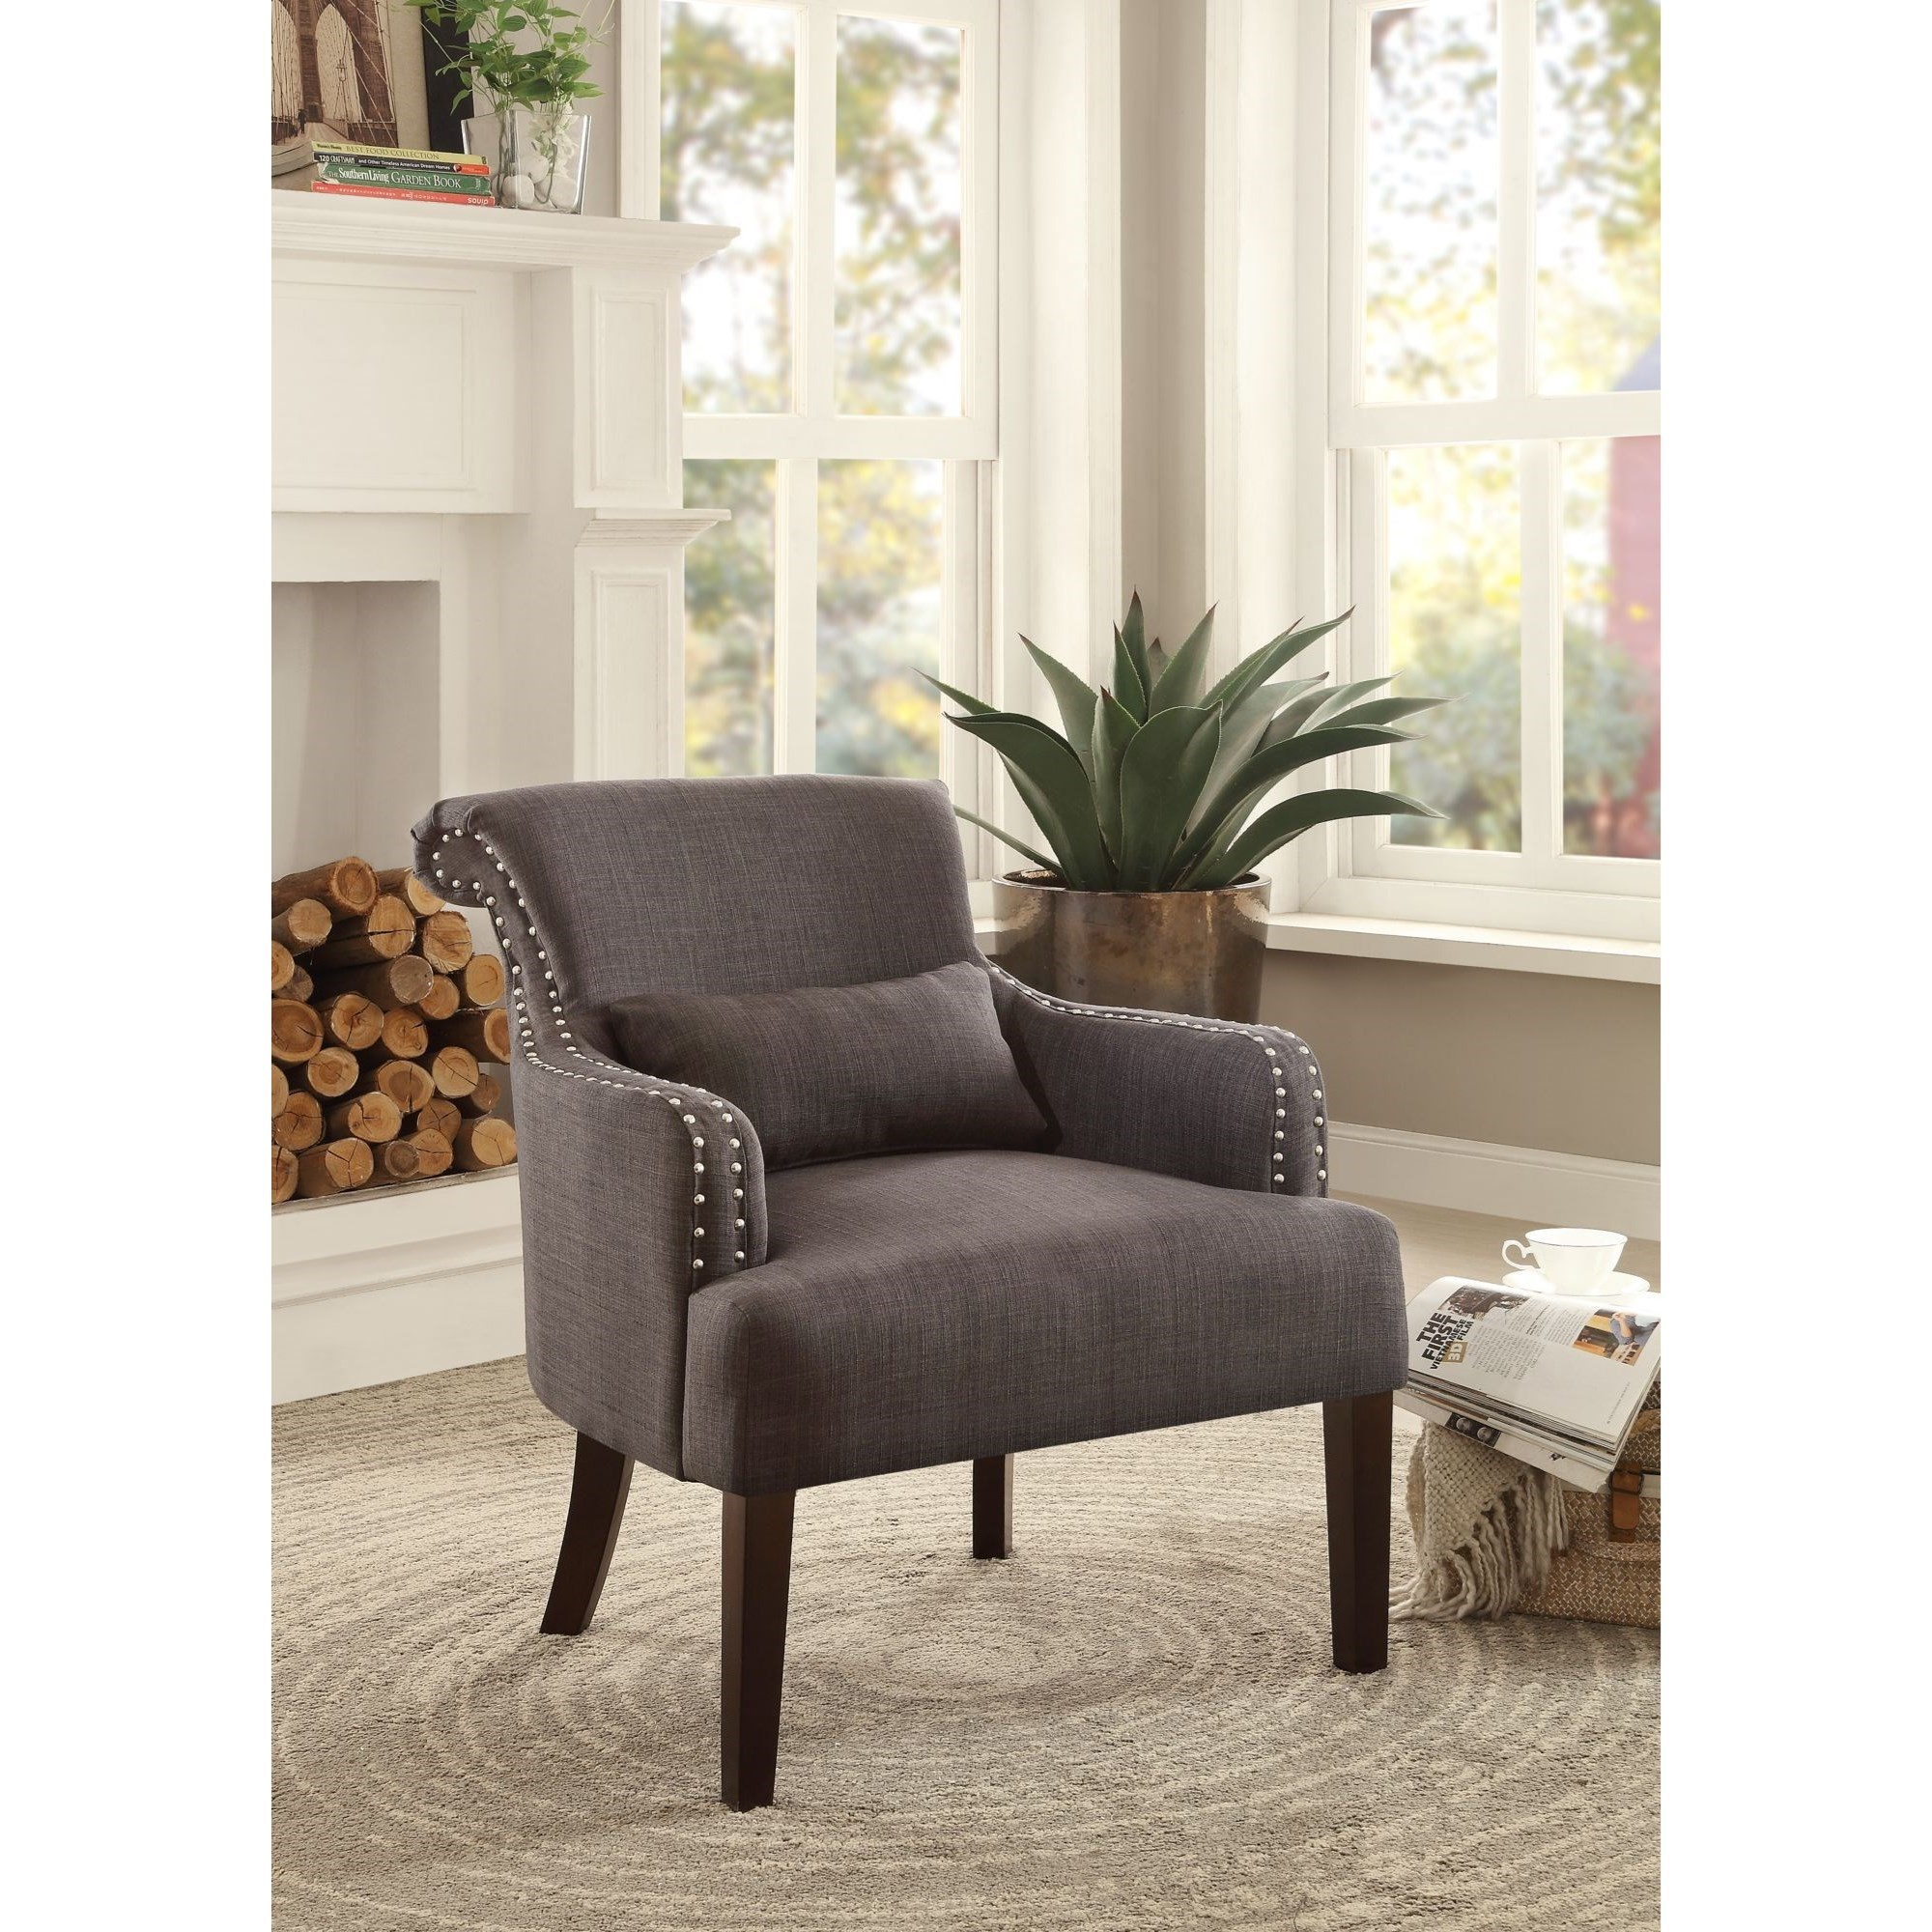 Homelegance Reedley Transitional Upholstered Chair - Item Number: 1235CH